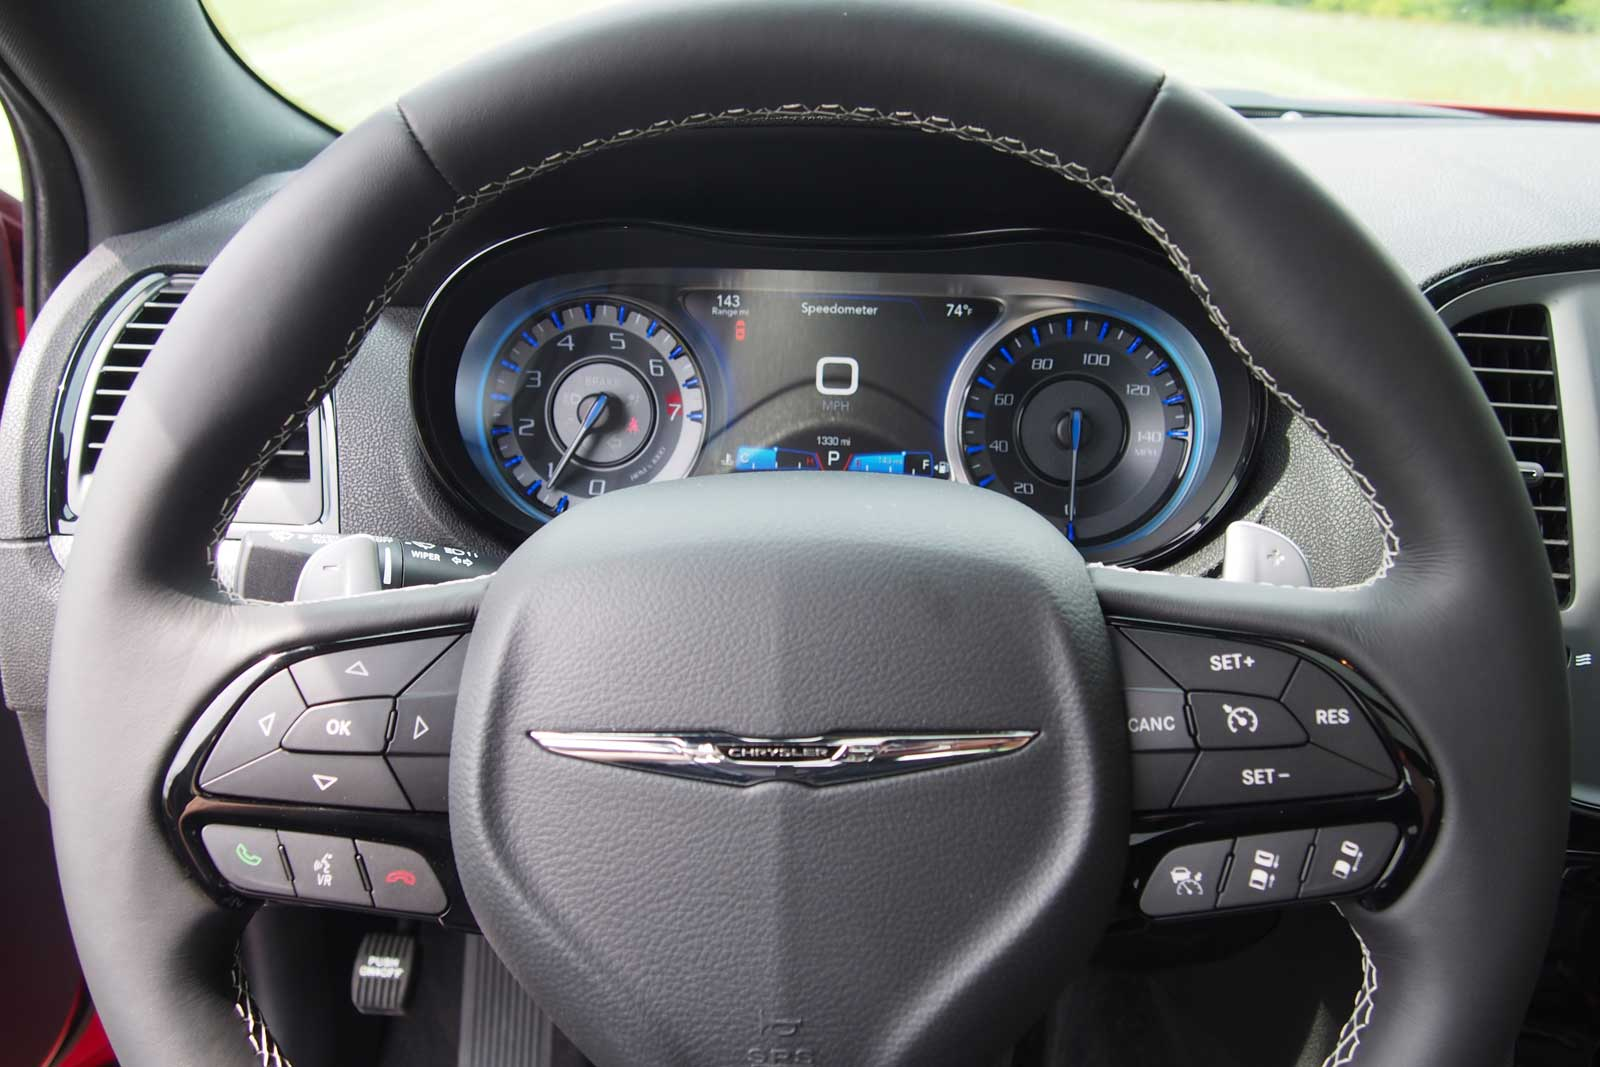 2016 Chrysler 300s Gauges 02